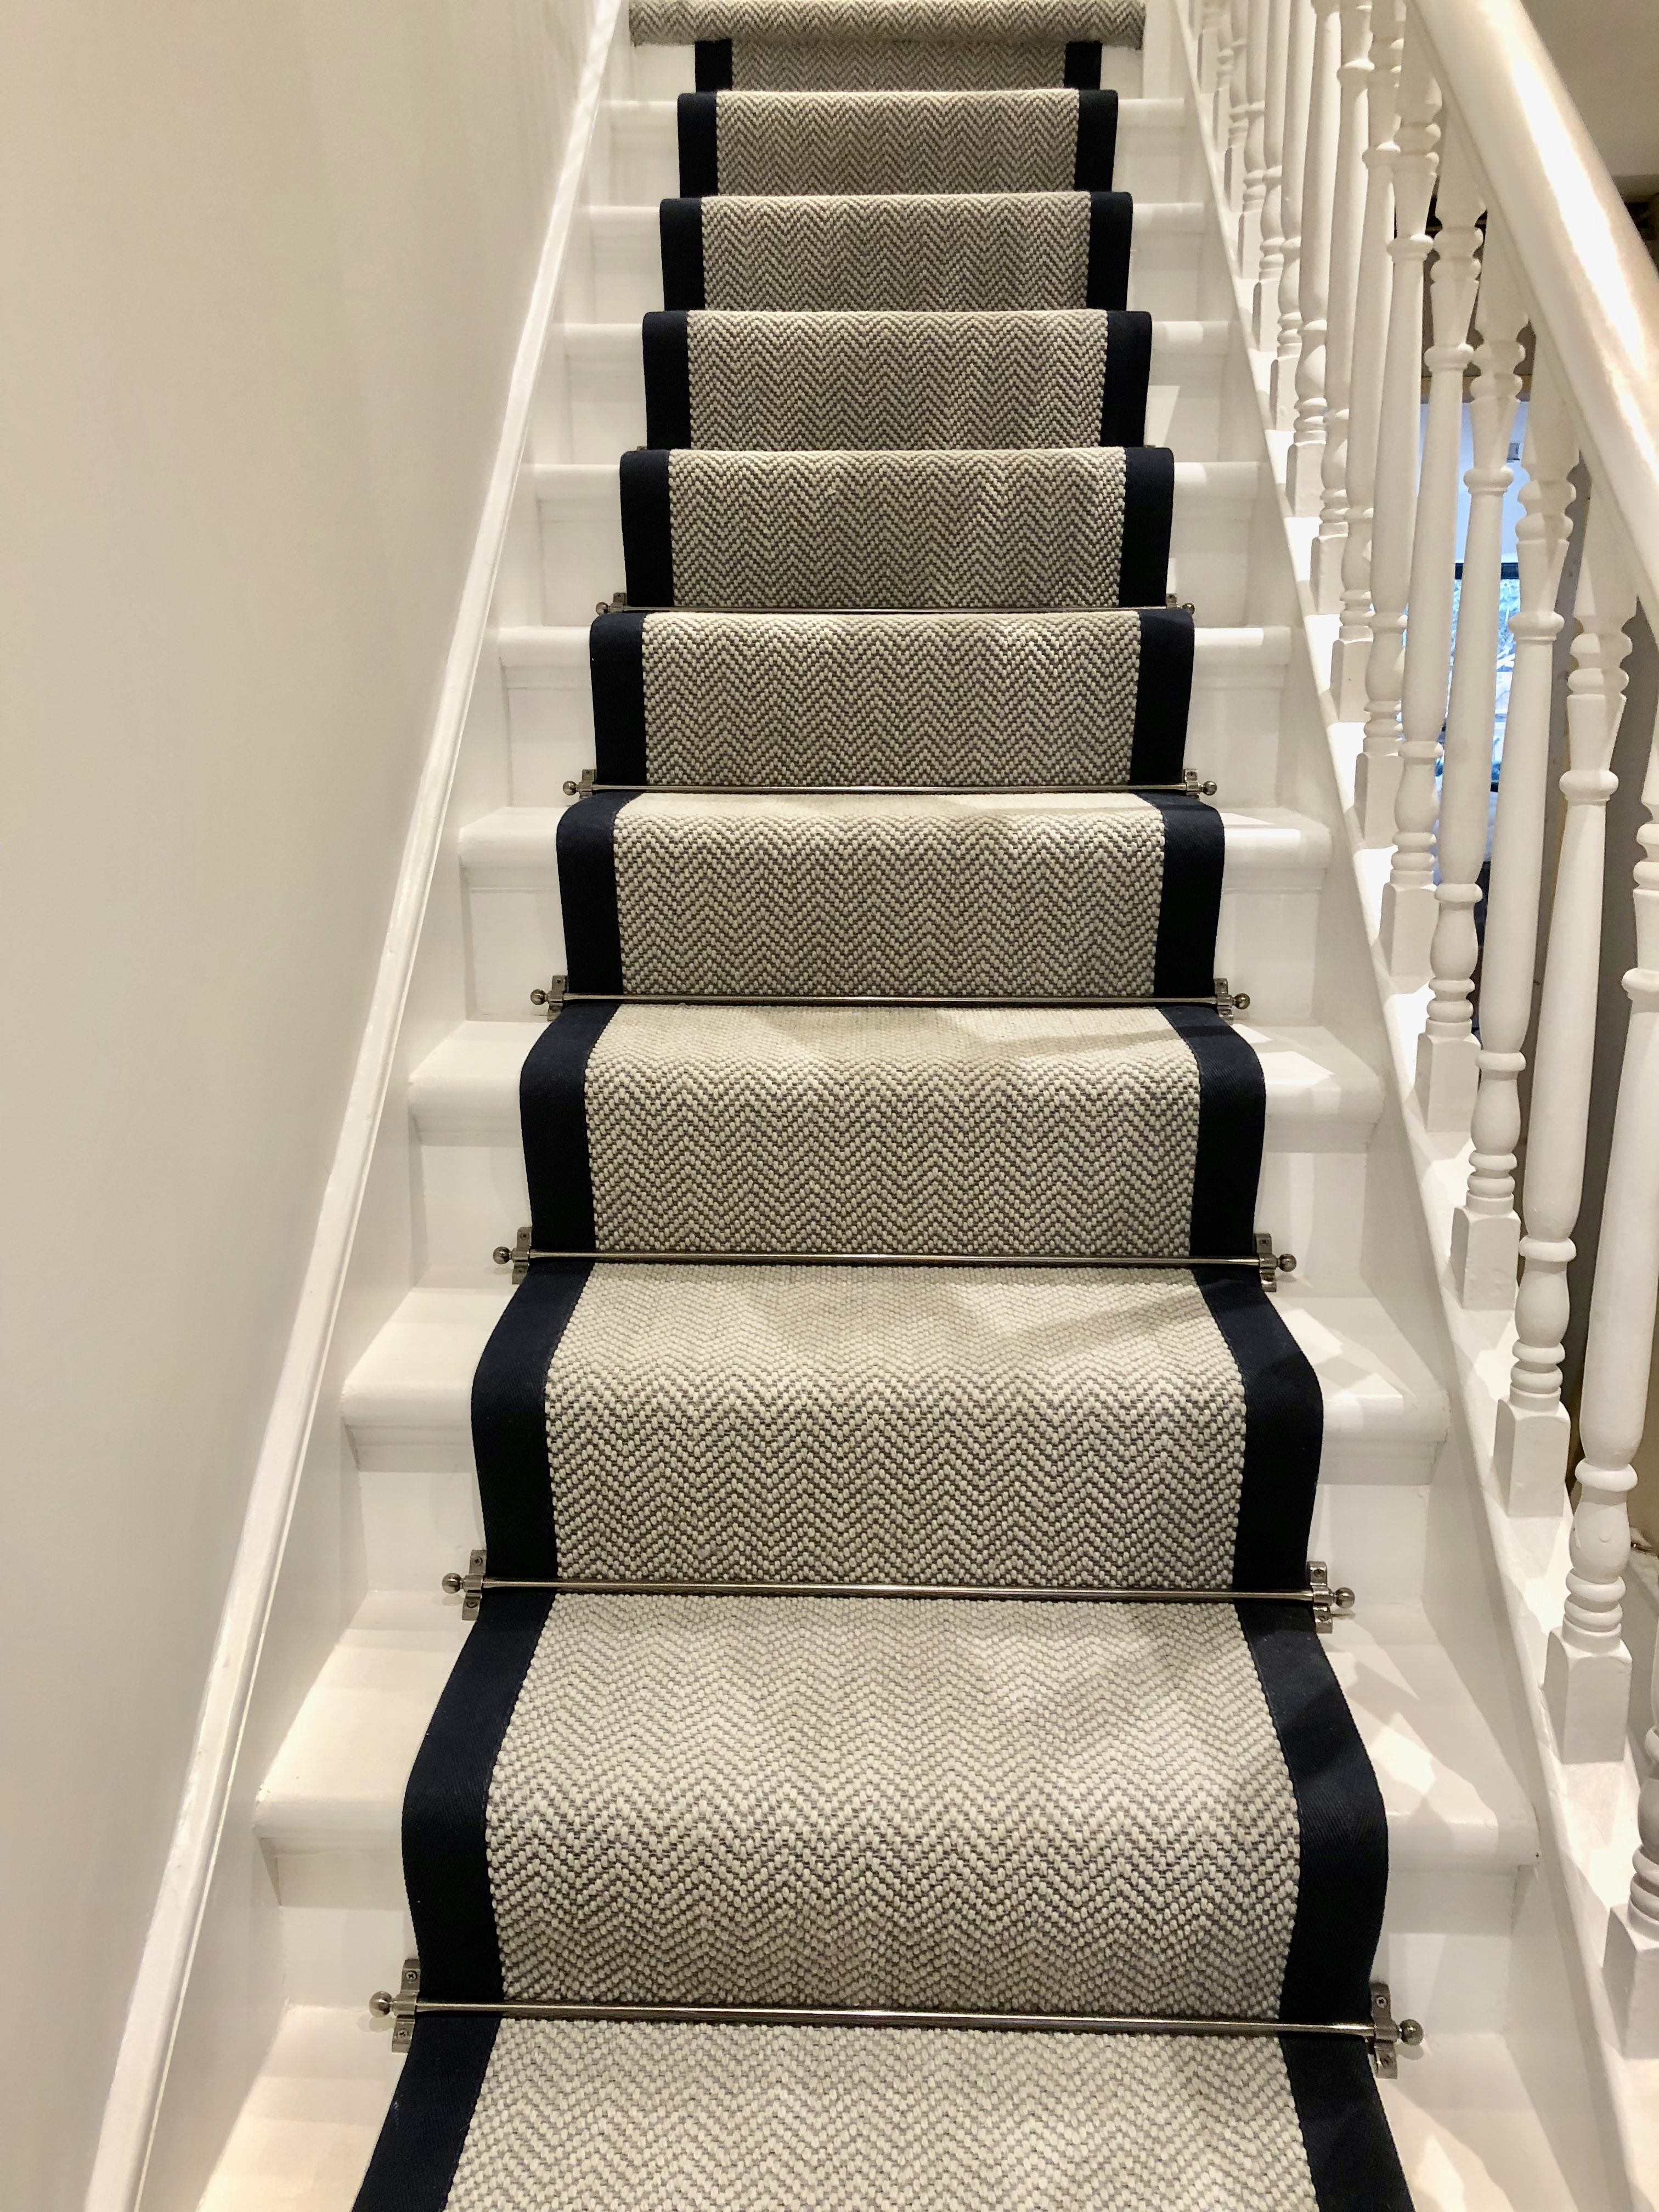 Grey Herringbone Stair Runner With Navy Trim Victoriawoodley   Cheap Carpet Runners For Stairs   Wooden Stairs   Stair Railing   Hallway Carpet   Staircase Remodel   Painted Stairs